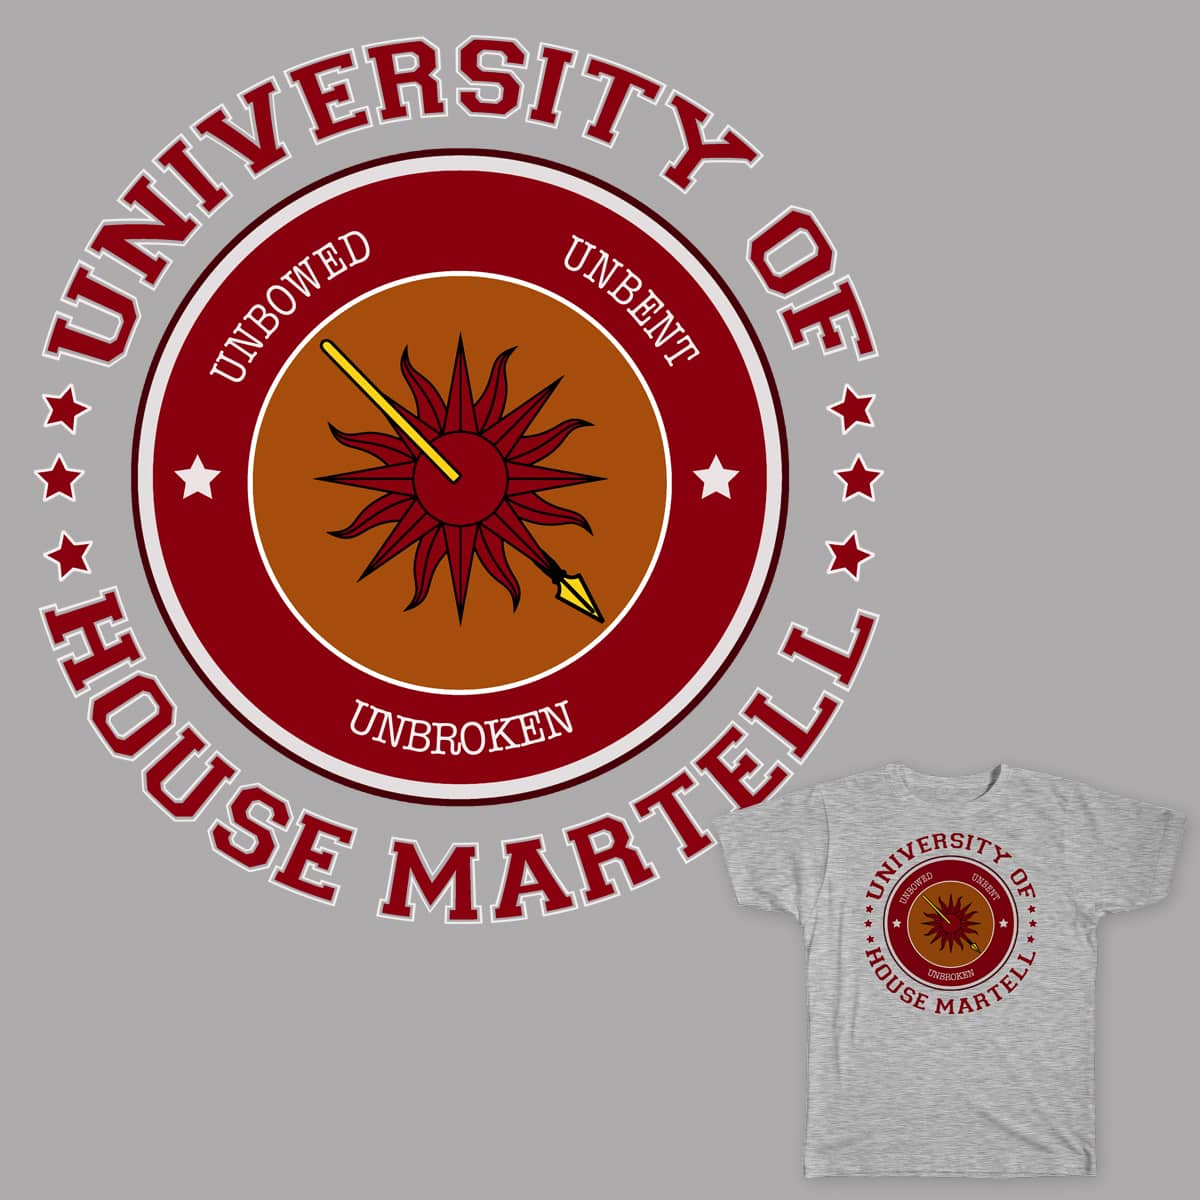 University of House Martell by mmatt88 on Threadless